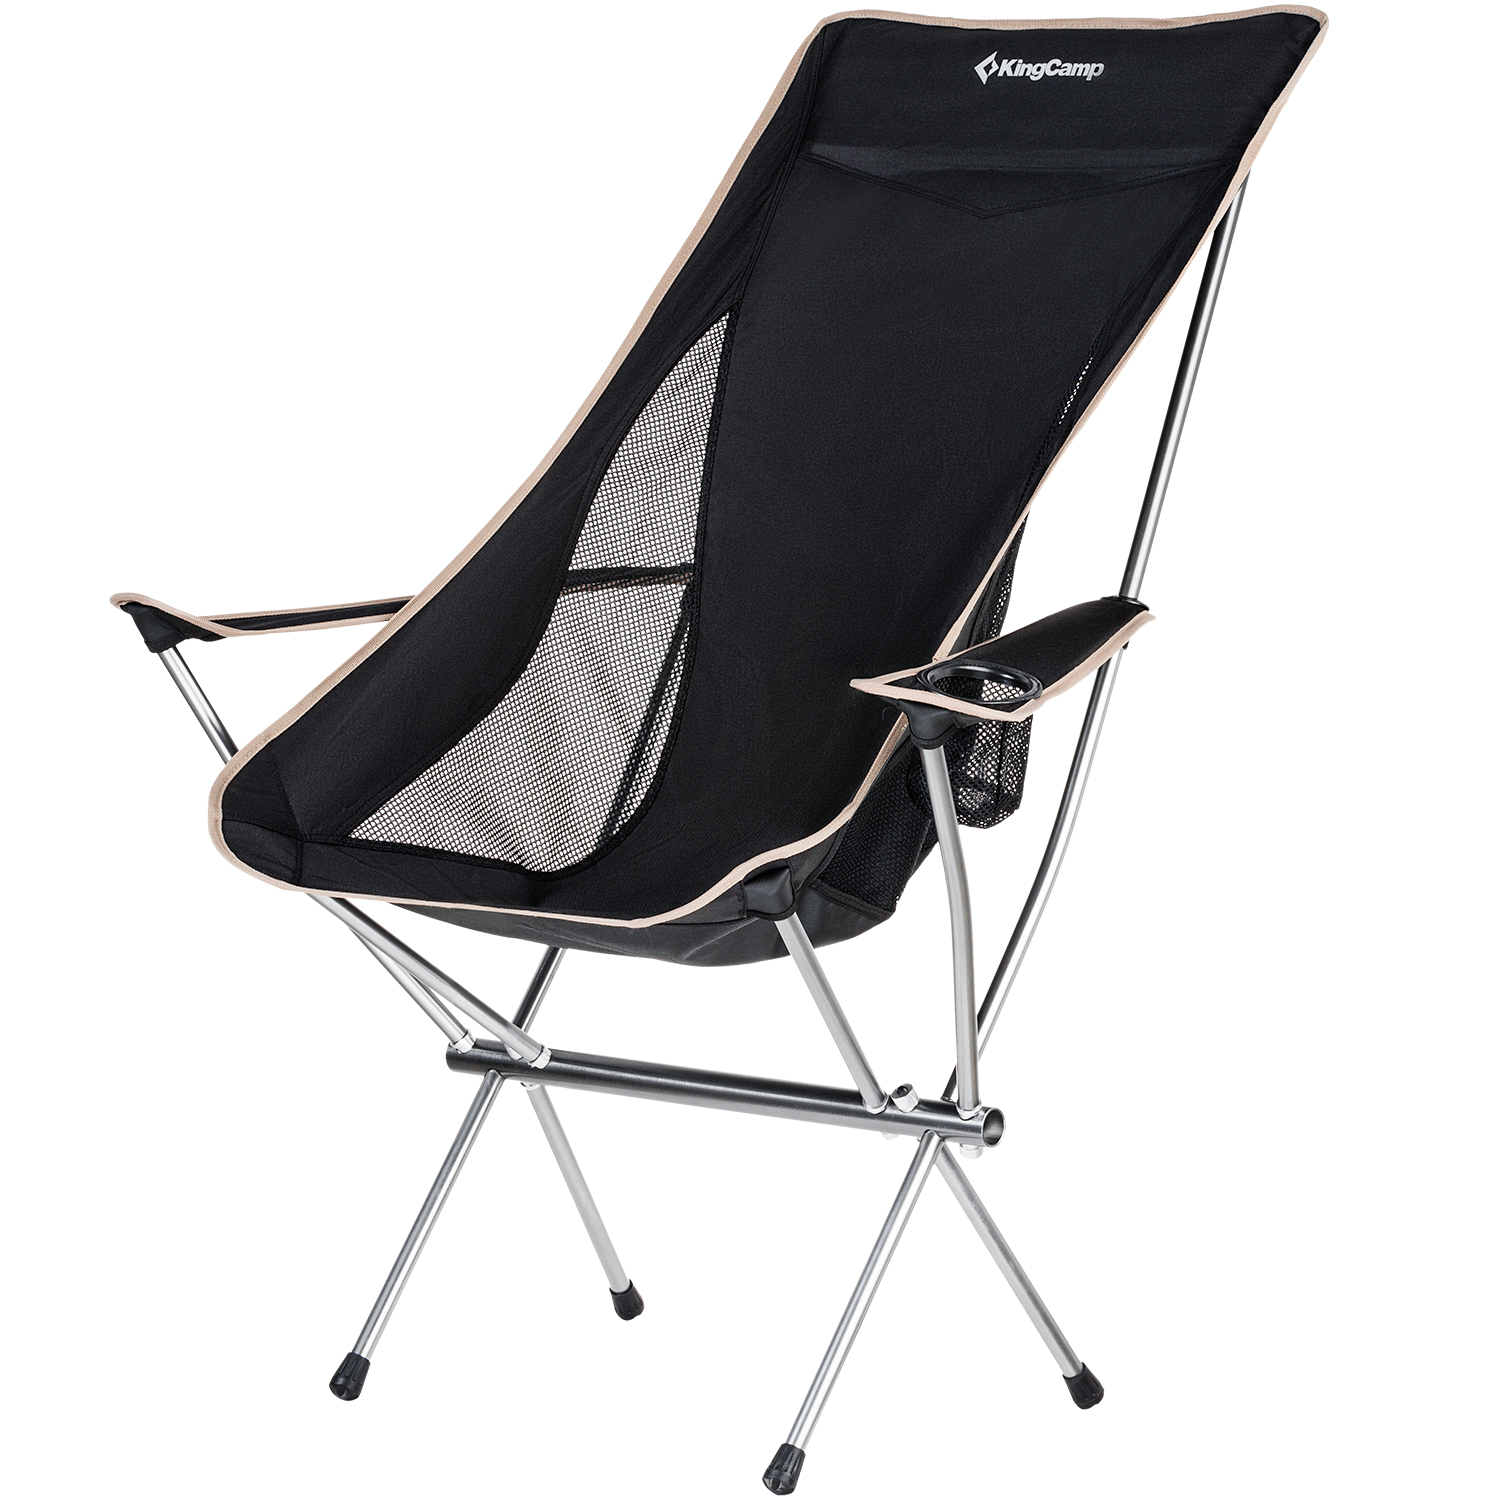 Fine Details About Kingcamp High Back Folding Chair Ultralight Compact Strong Armrest Cup Holder Camellatalisay Diy Chair Ideas Camellatalisaycom